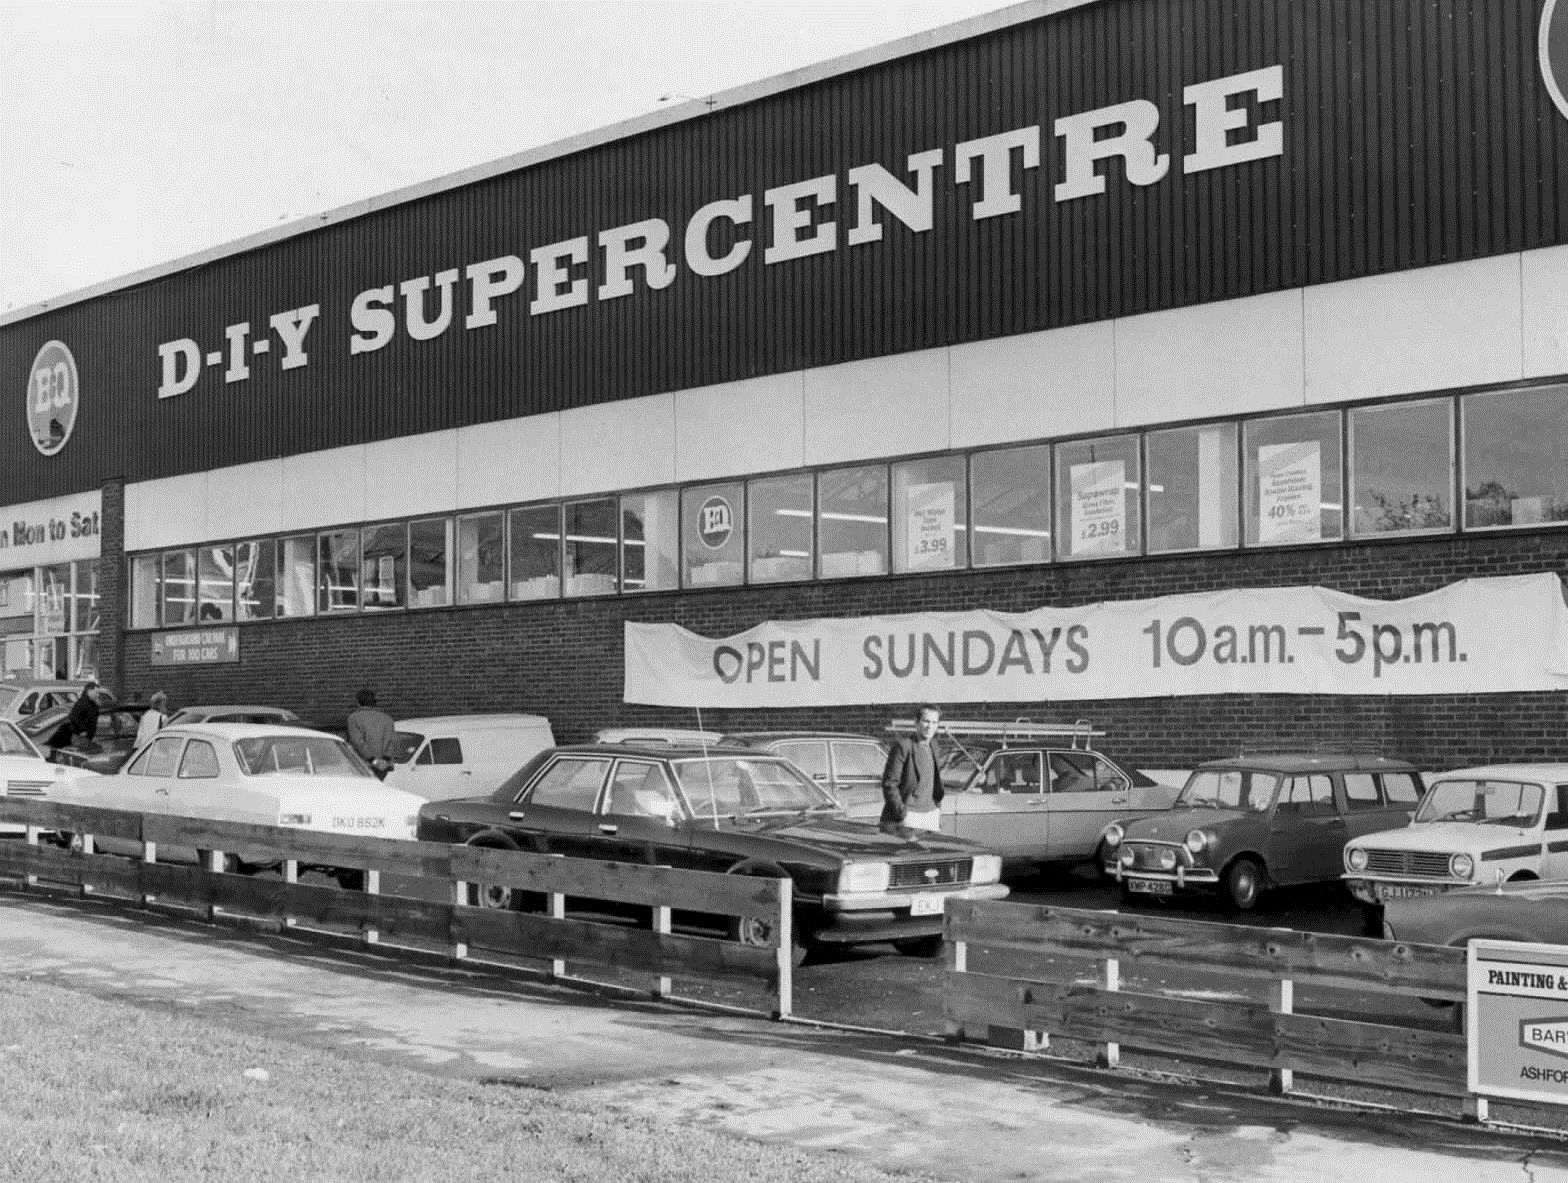 HomePlus was previously B&Q, pictured here in November 1982